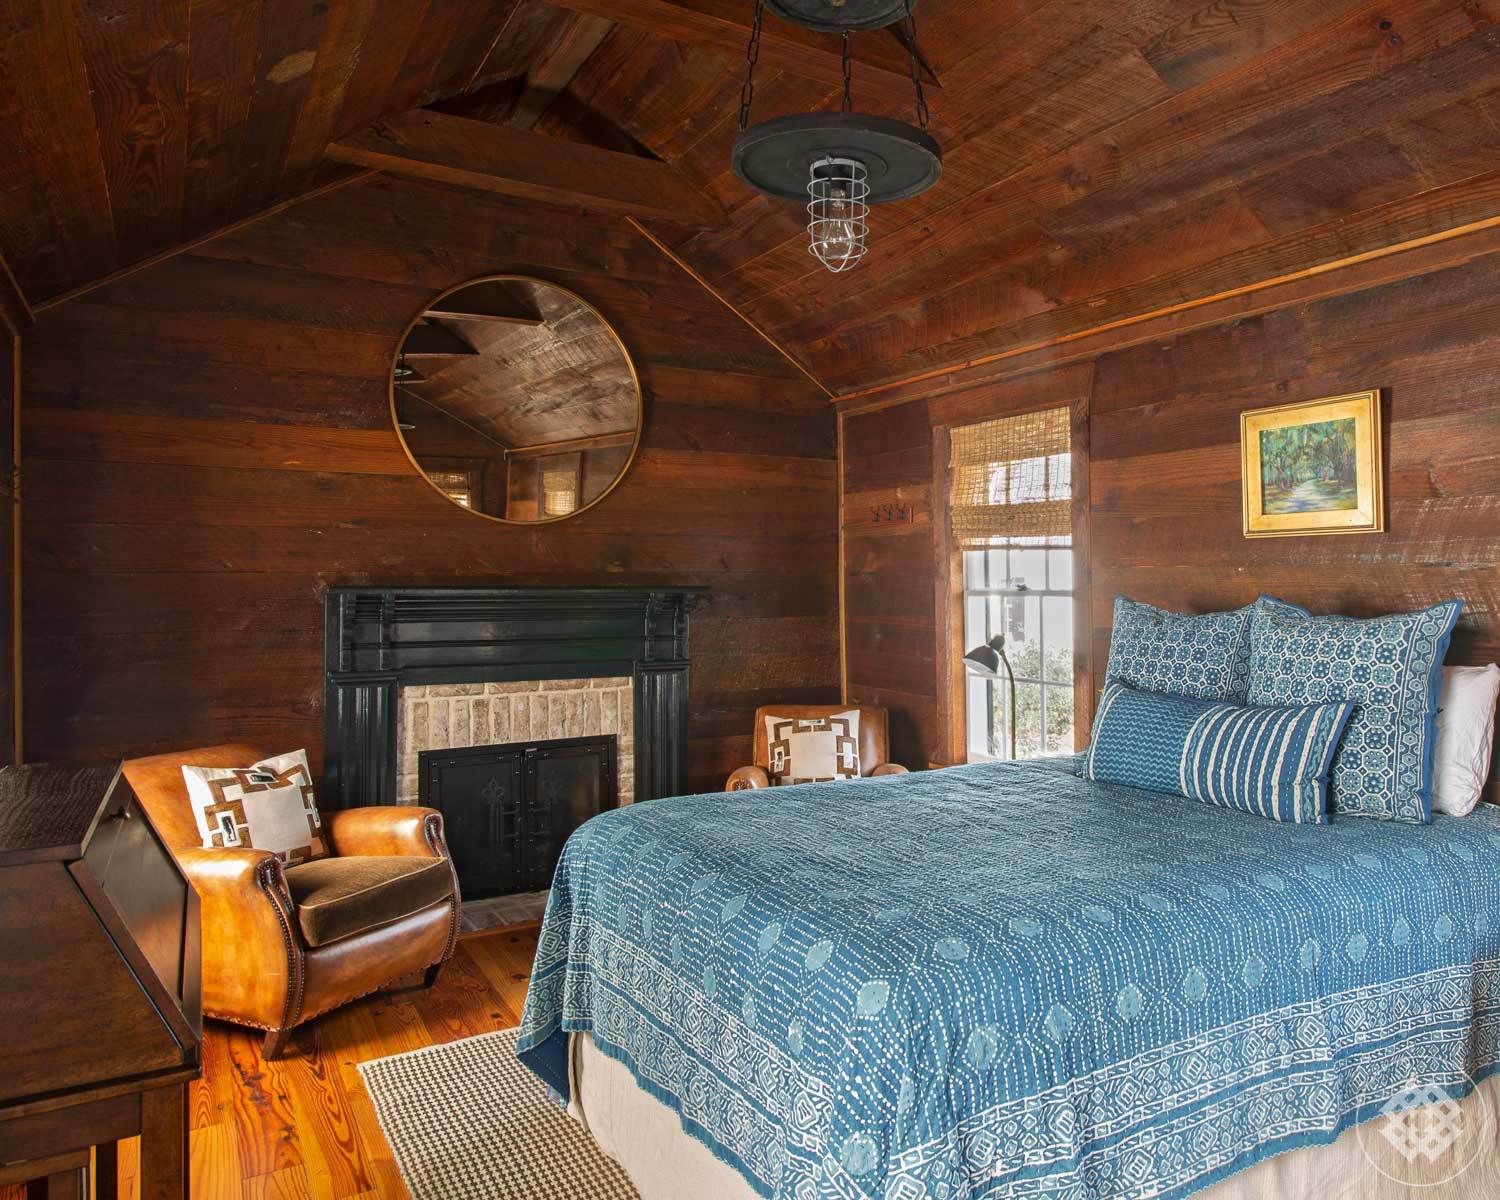 mfh-guest-bedroom-cypress-siding-brick-hearth-fireplace.jpg